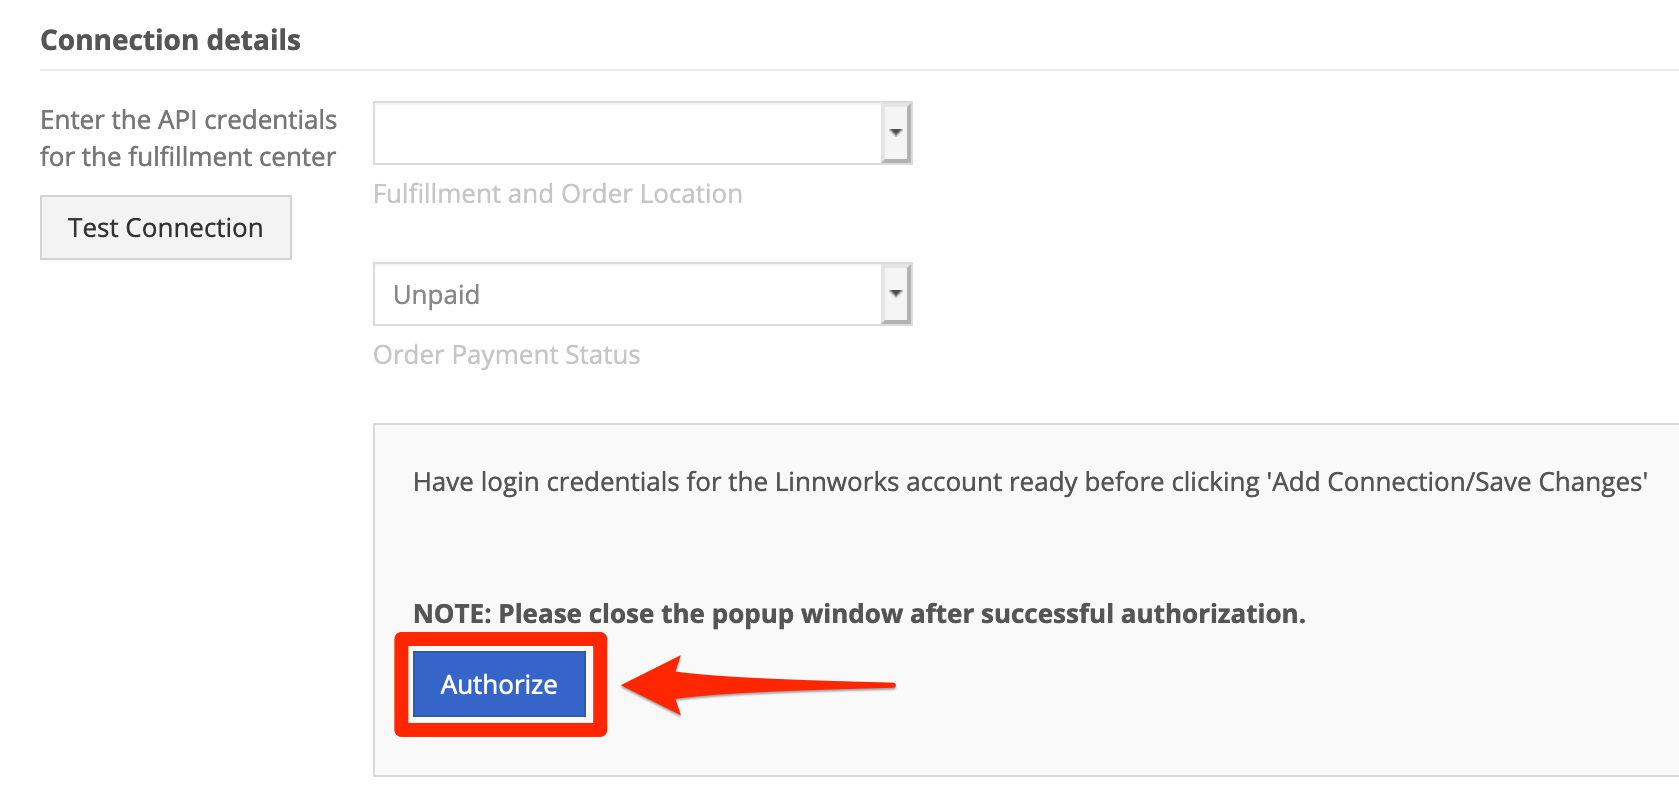 In Connection Details, click Authorize